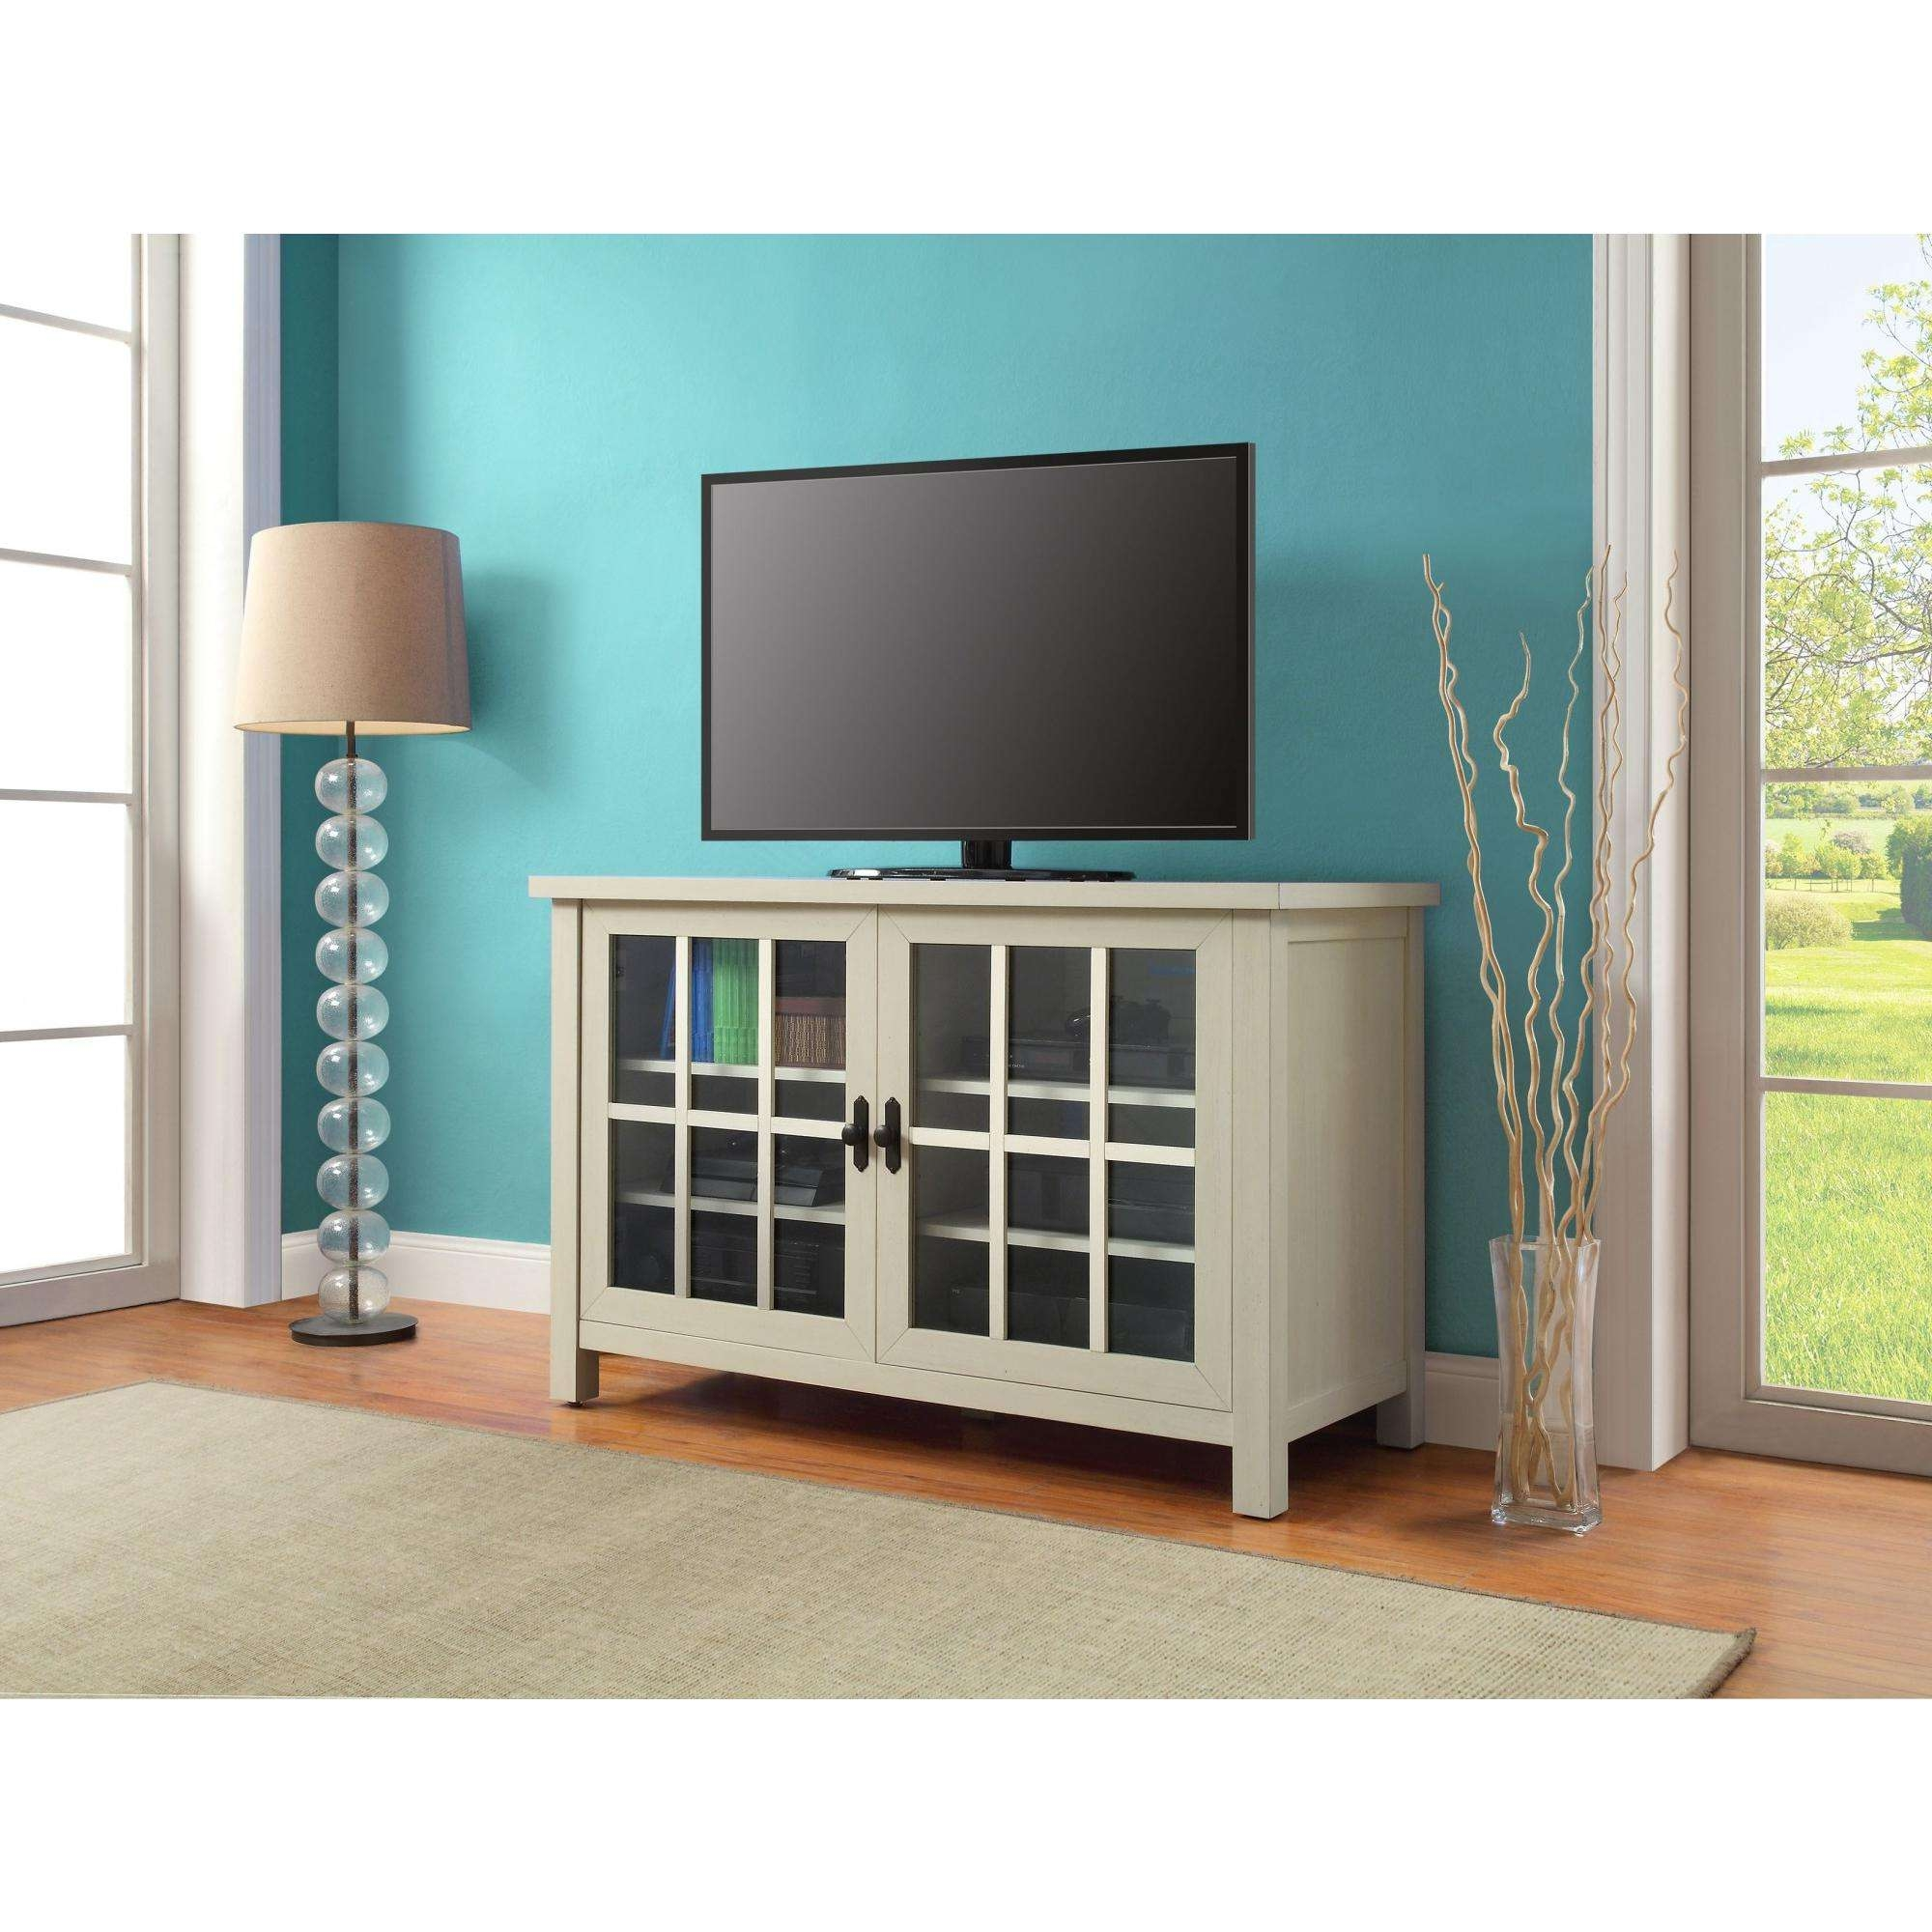 Better Homes And Gardens Oxford Square Tv Console For Tvs Up To 55 Intended For Square Tv Stands (View 4 of 15)